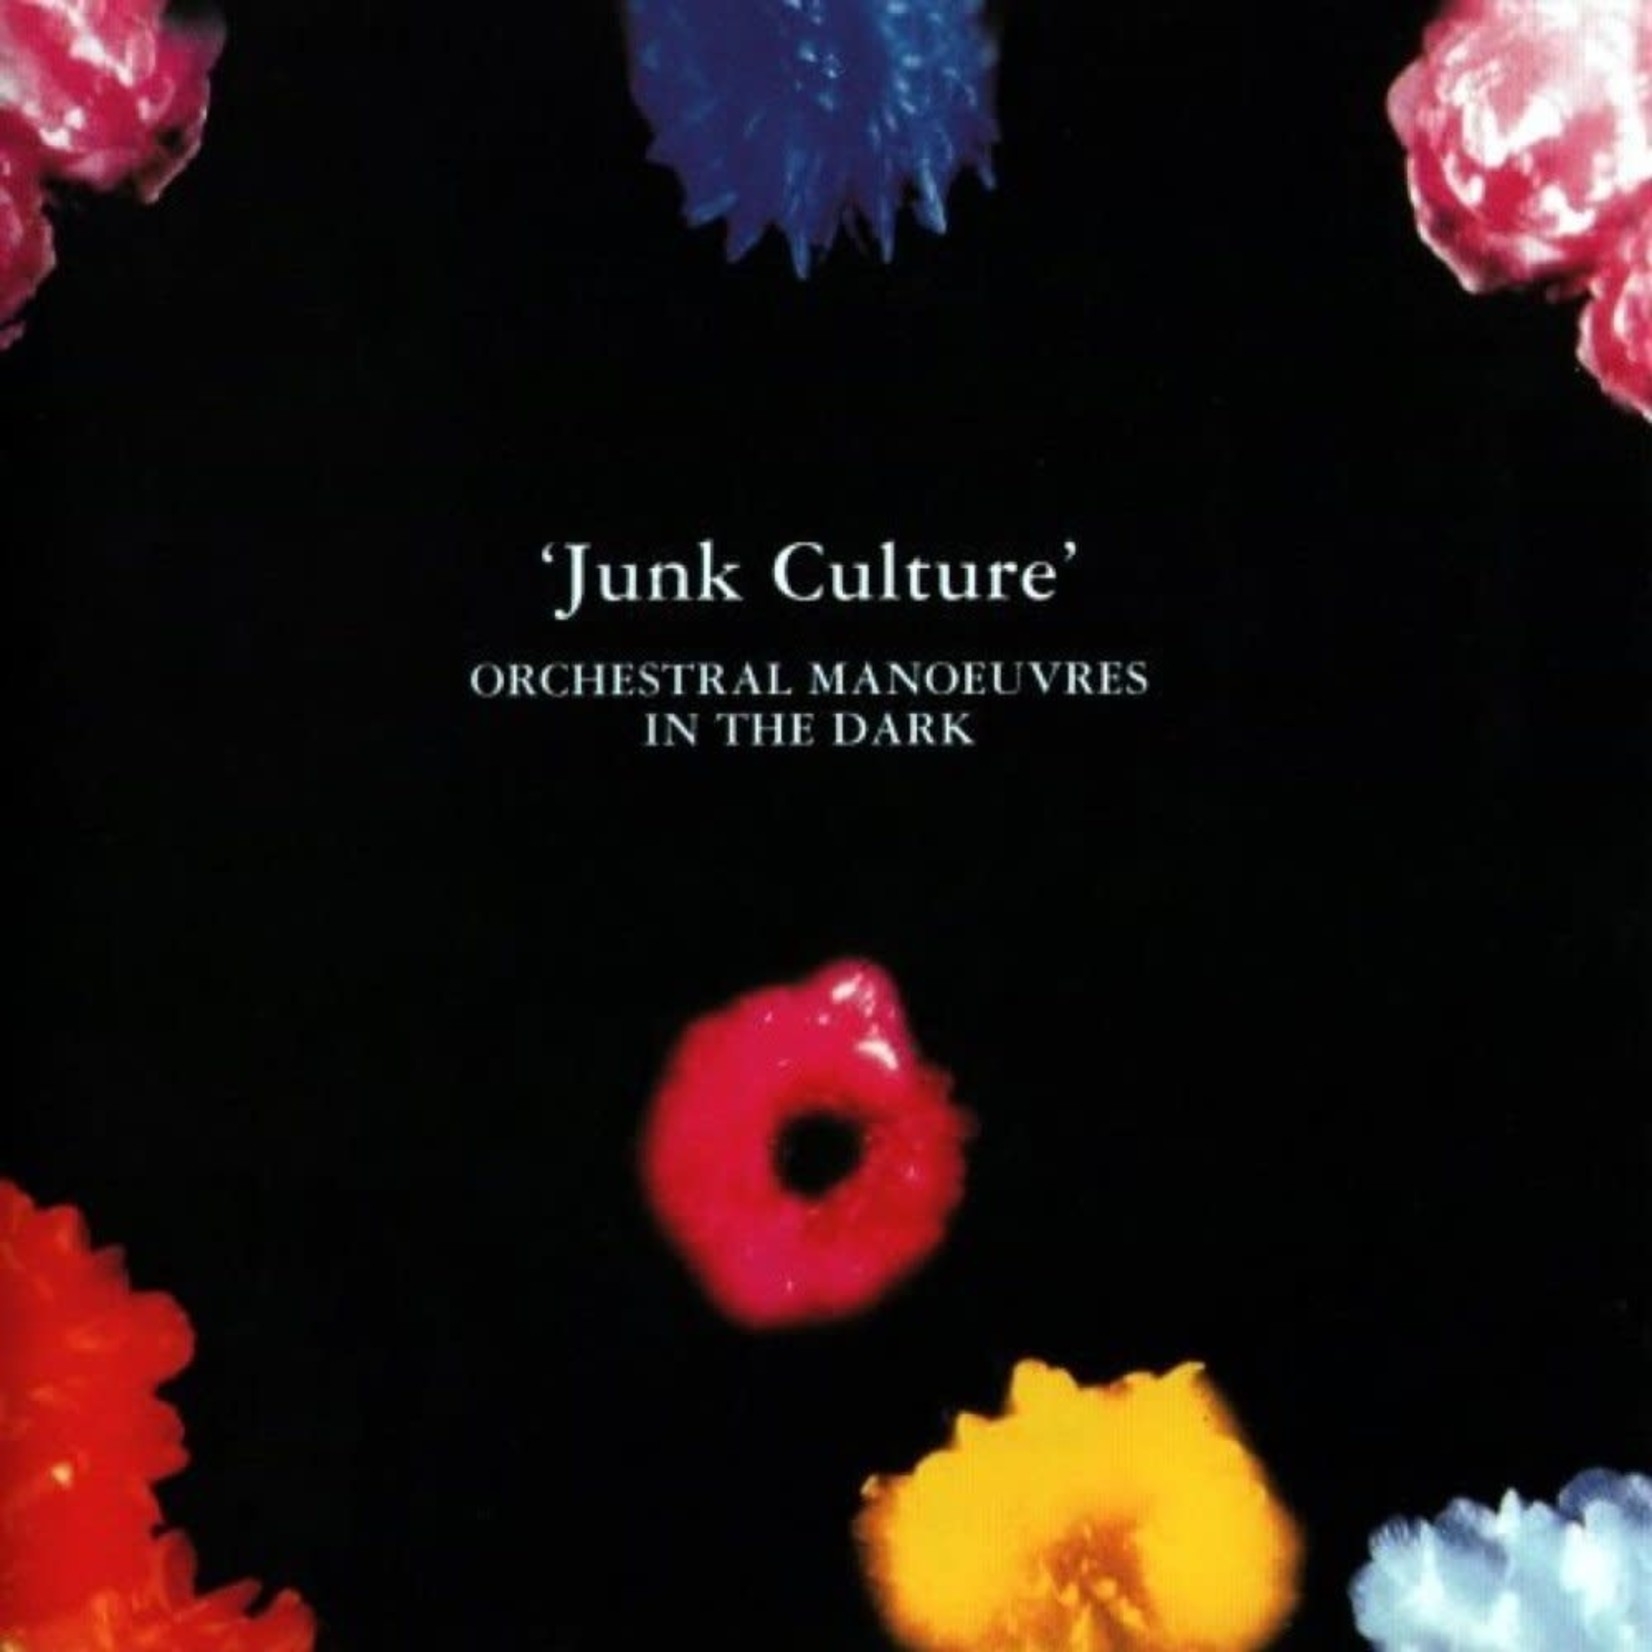 [Vintage] Orchestral Manoeuvres in the Dark: Junk Culture